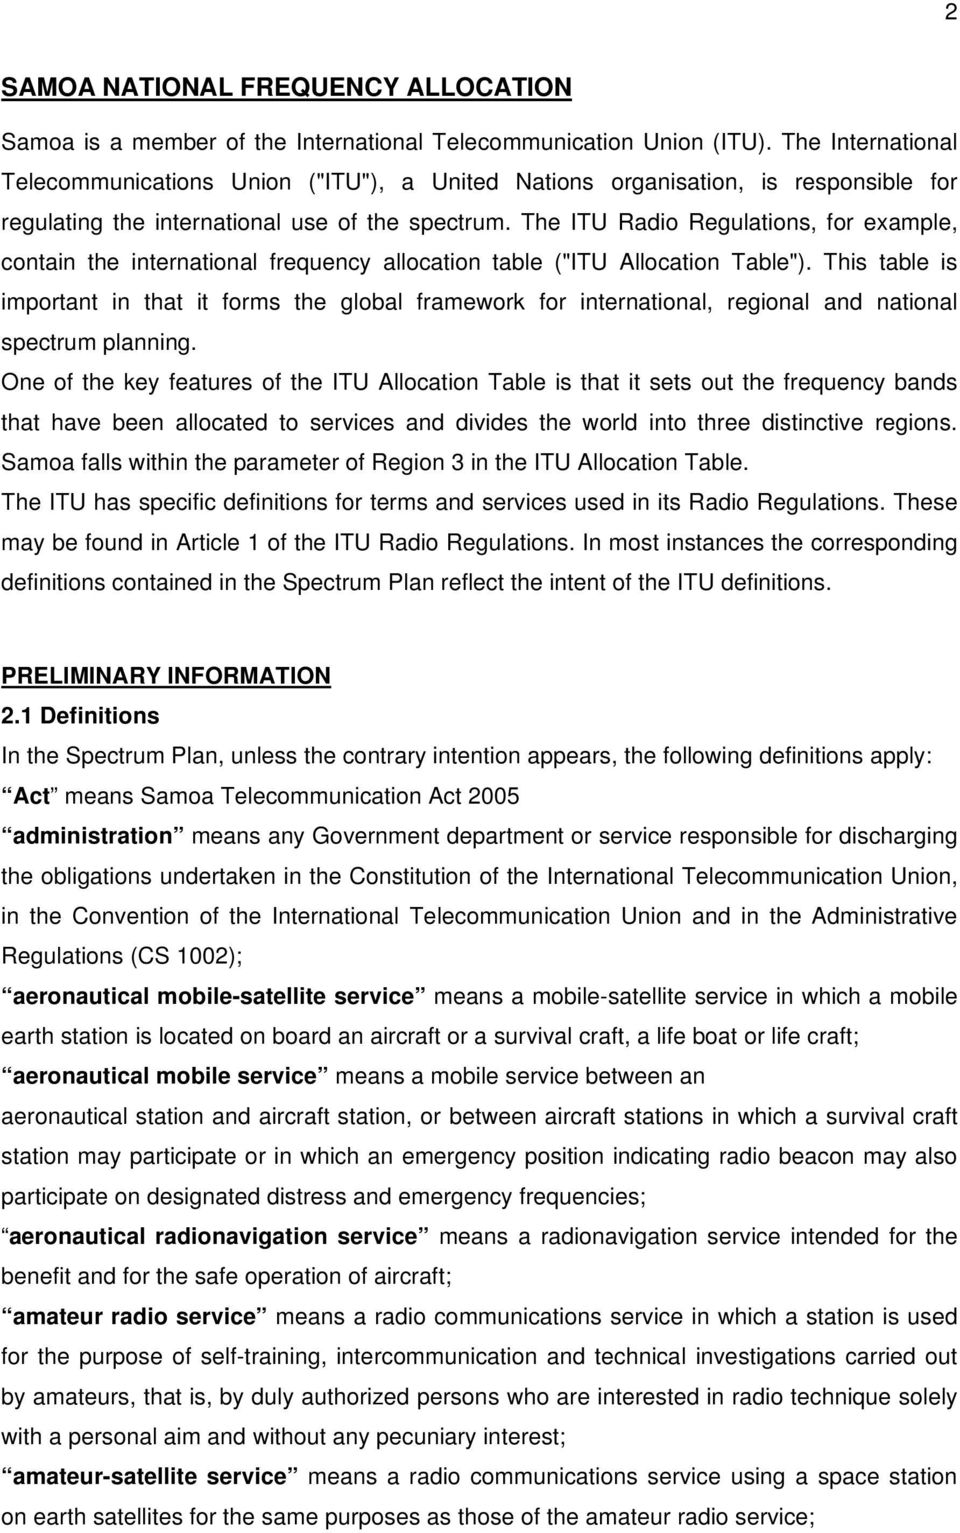 "The ITU Radio Regulations, for example, contain the international frequency allocation table (""ITU Allocation Table"")."